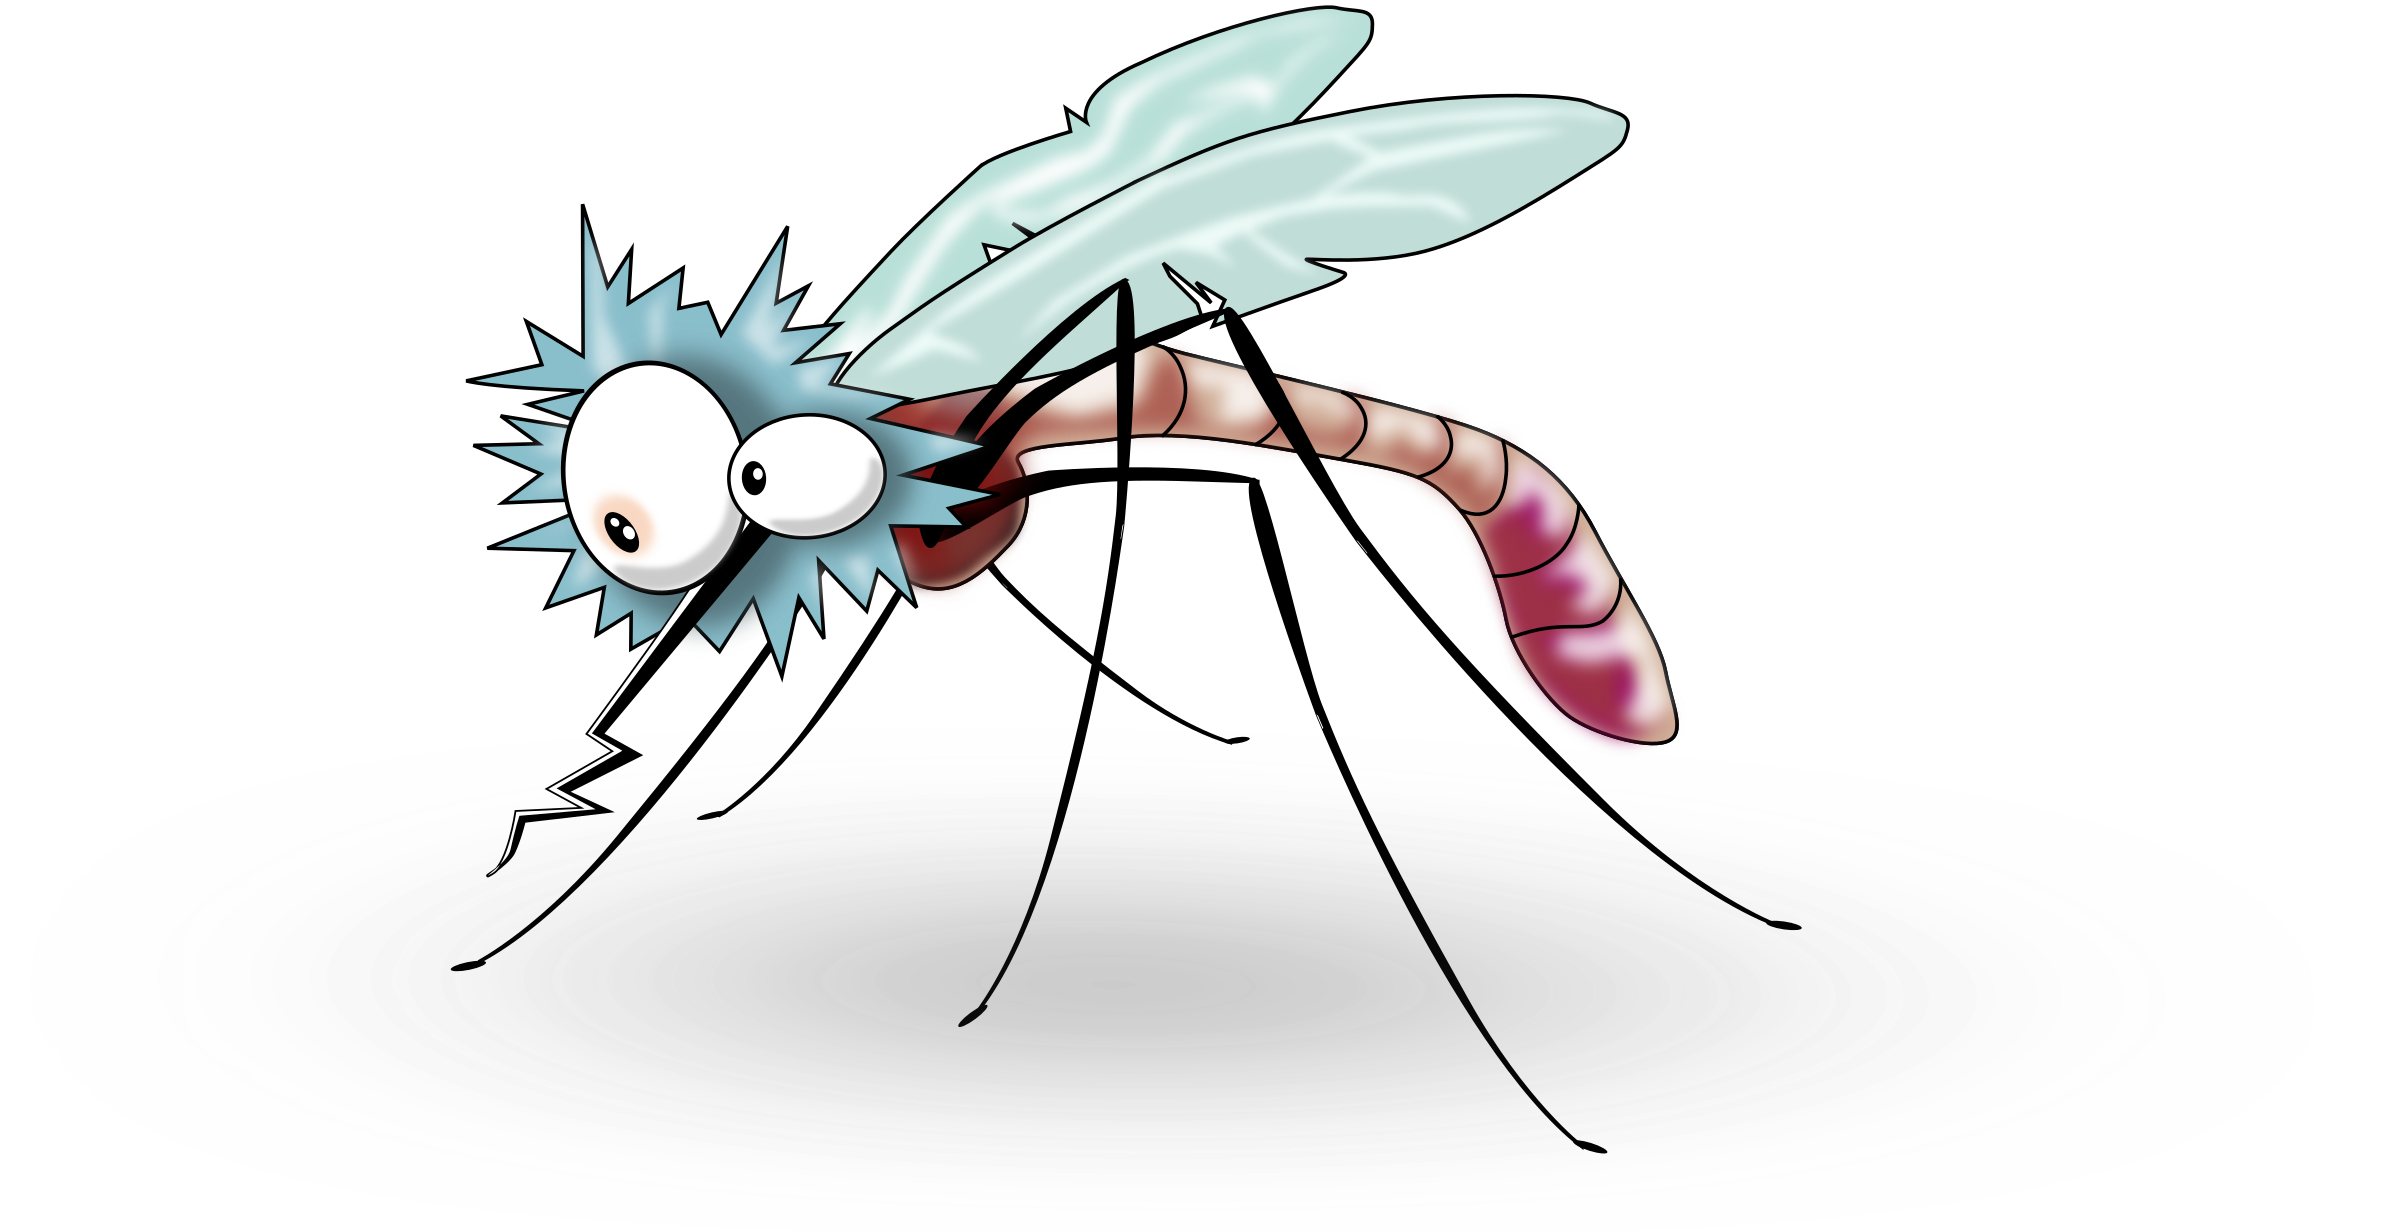 Fly clipart mosca. Pin by paula rice